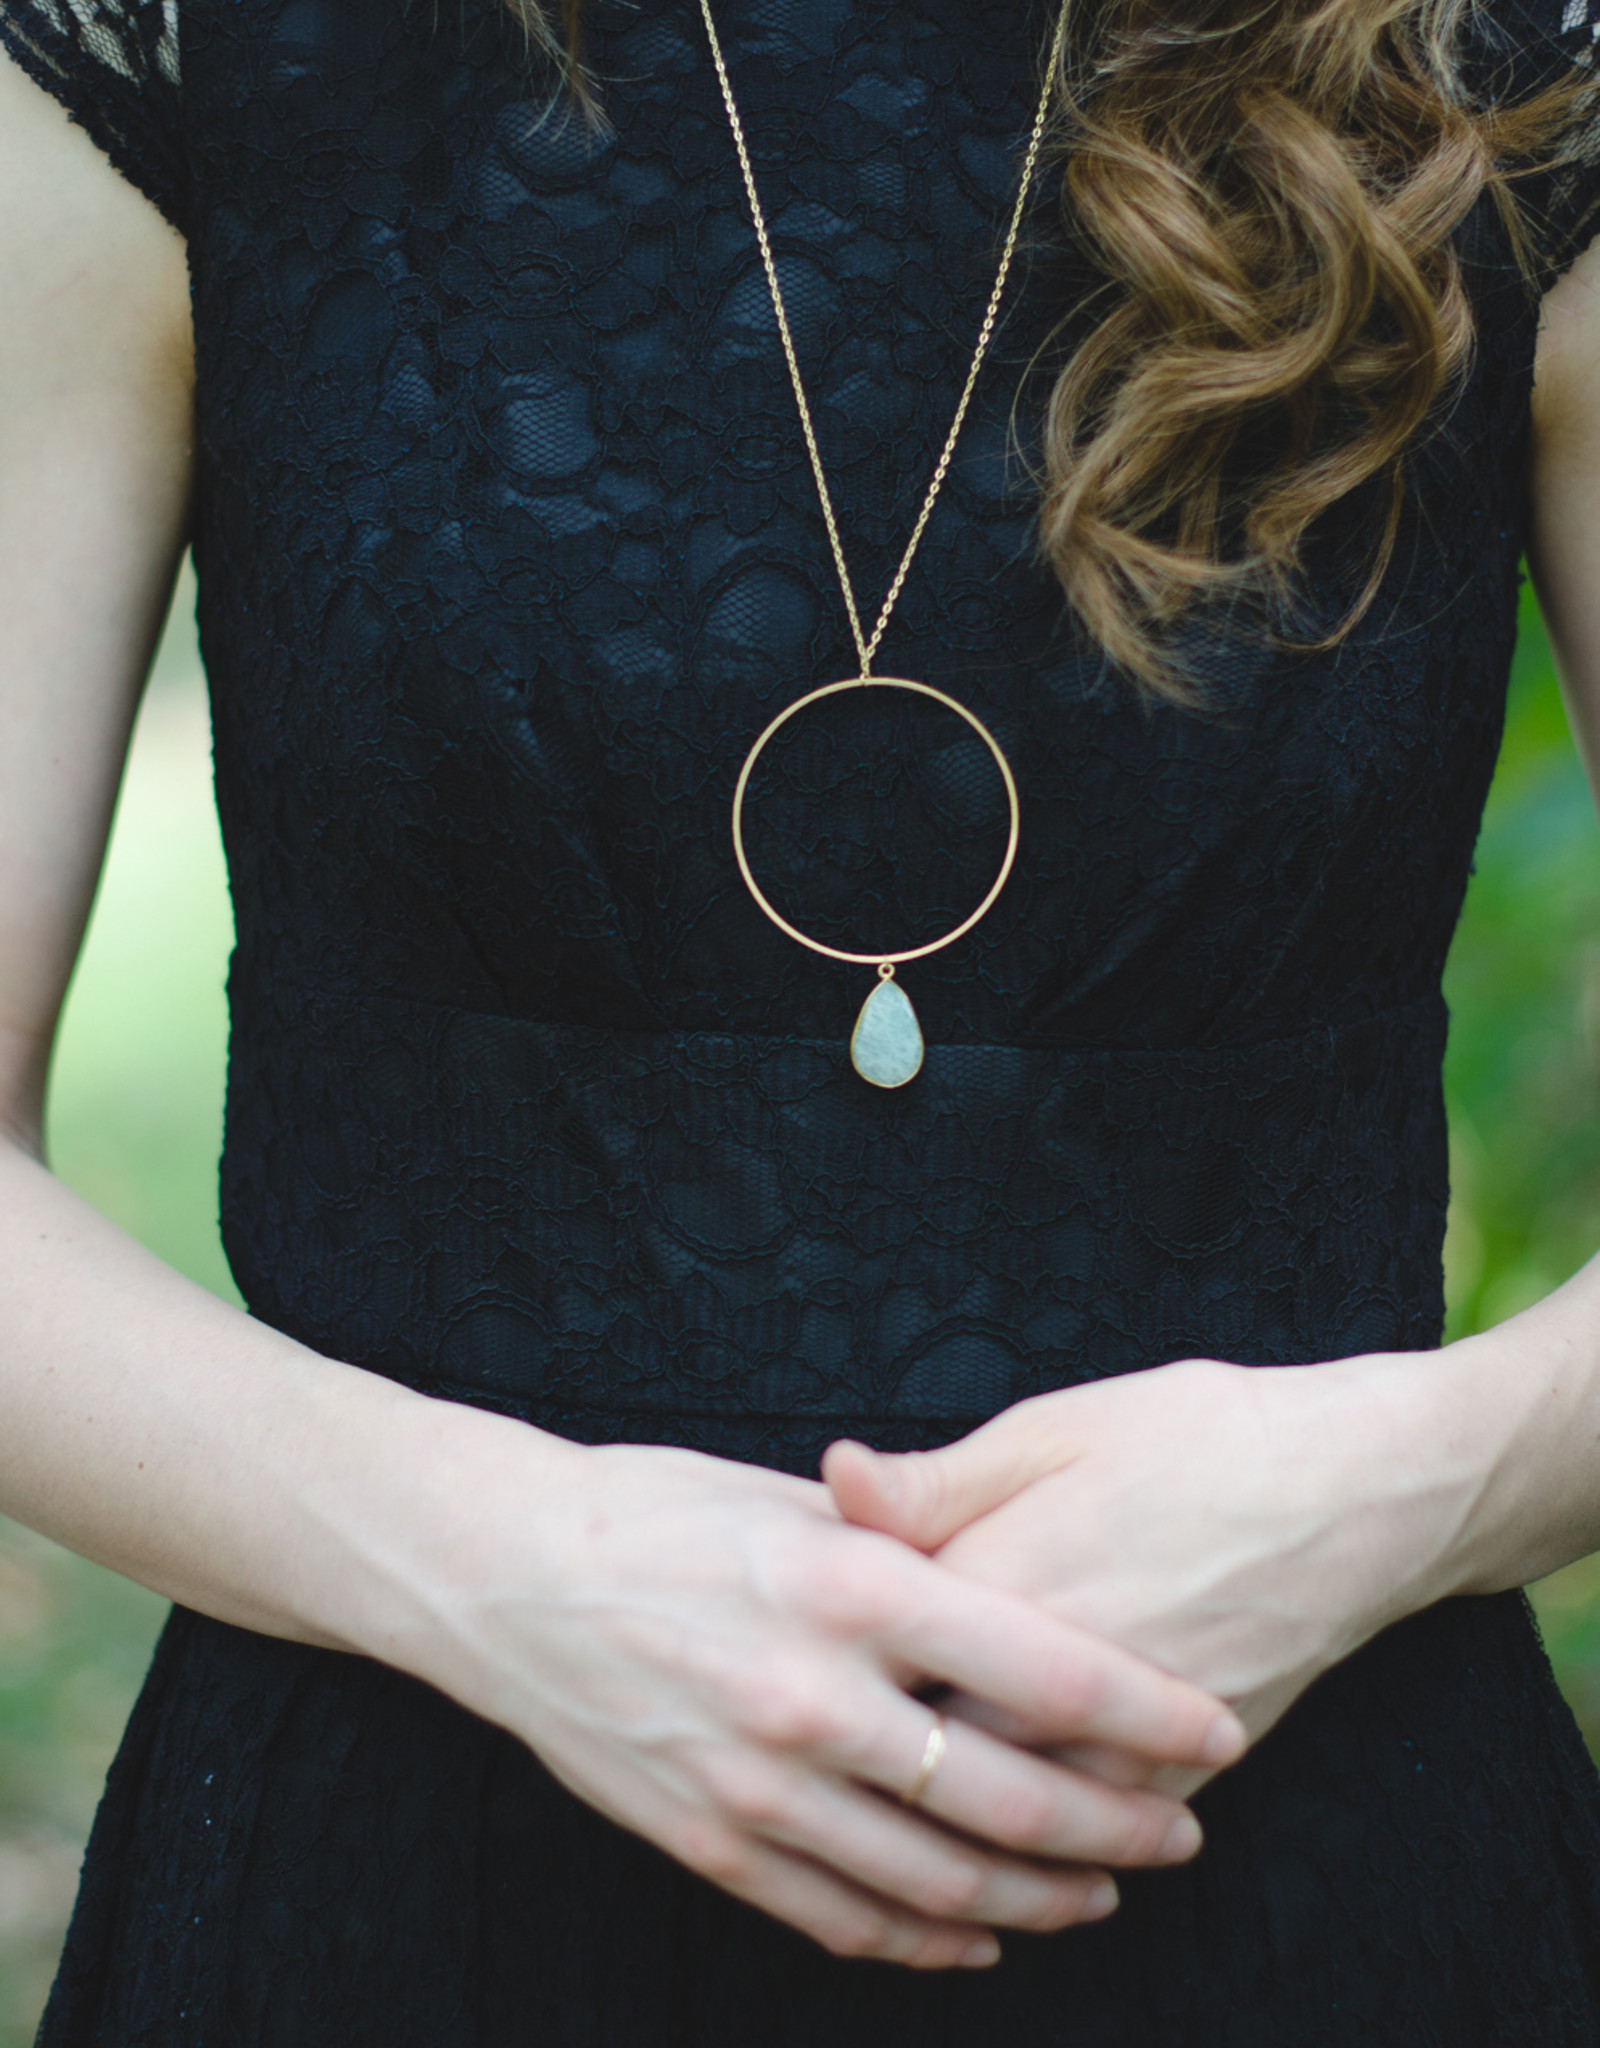 Bloom + Thistle The Imogen Necklace by Bloom + Thistle